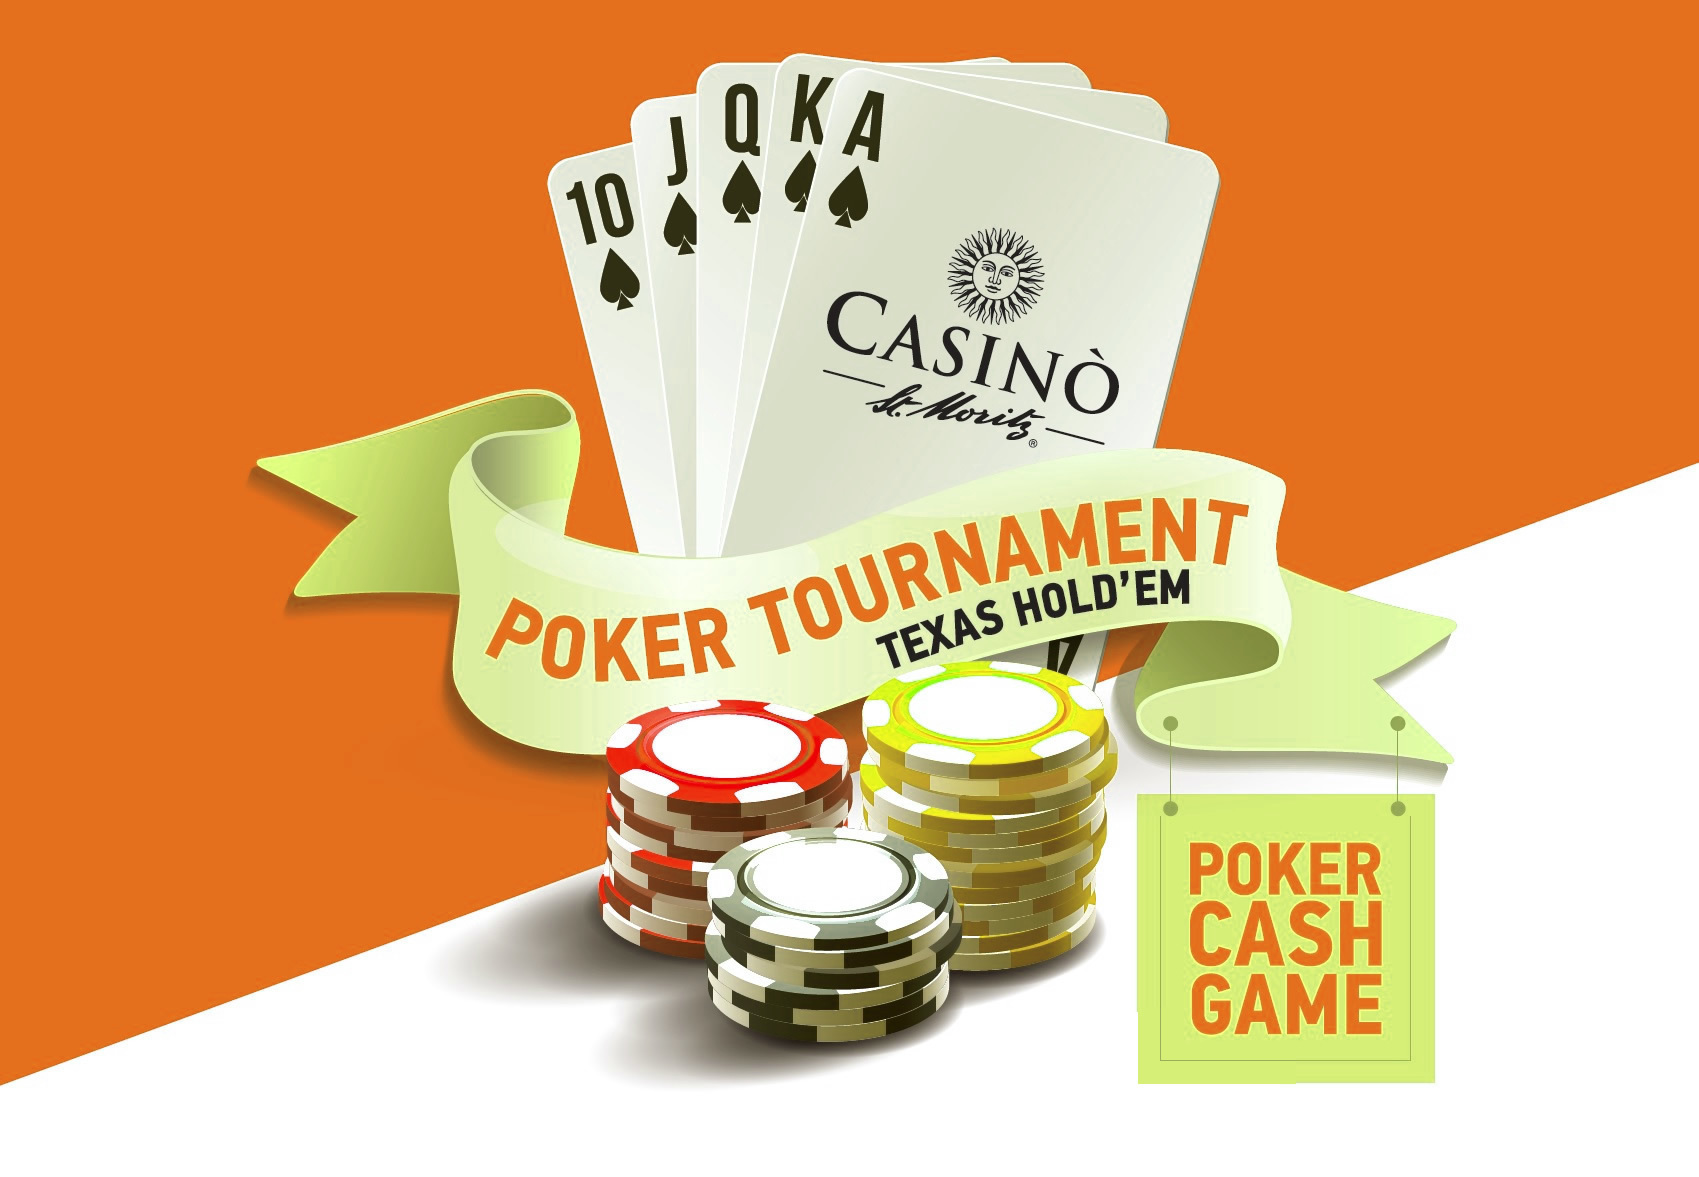 Casino: Poker Tournament Texas Hold´em & Cash Game